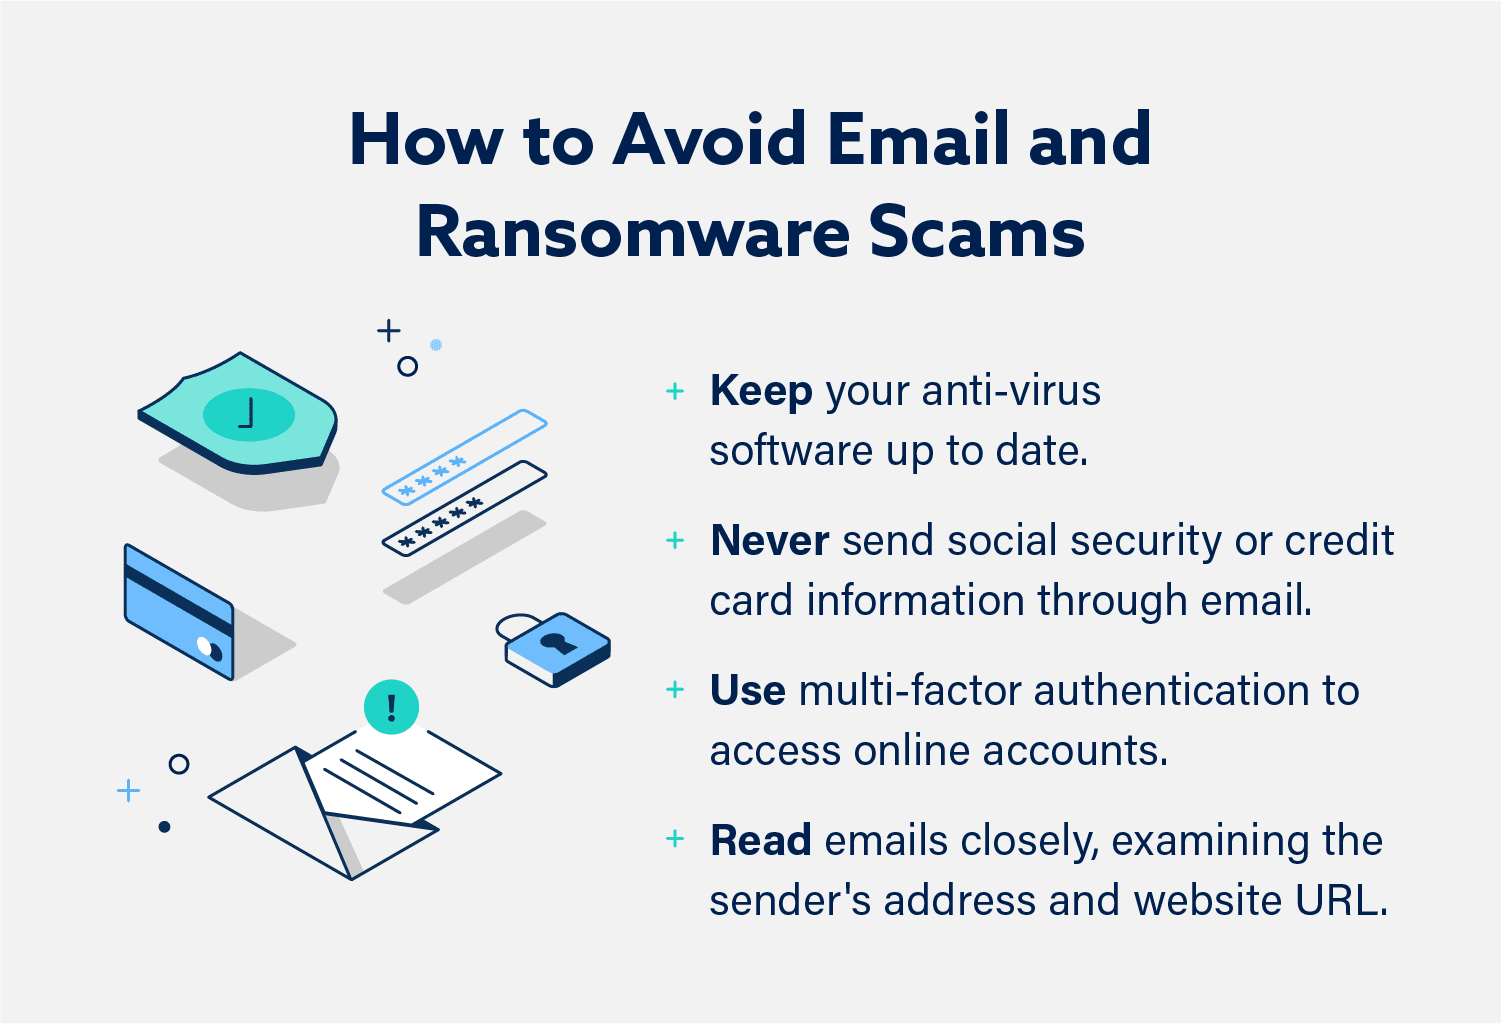 Graphic: How to Avoid Email and Ransomware Scams